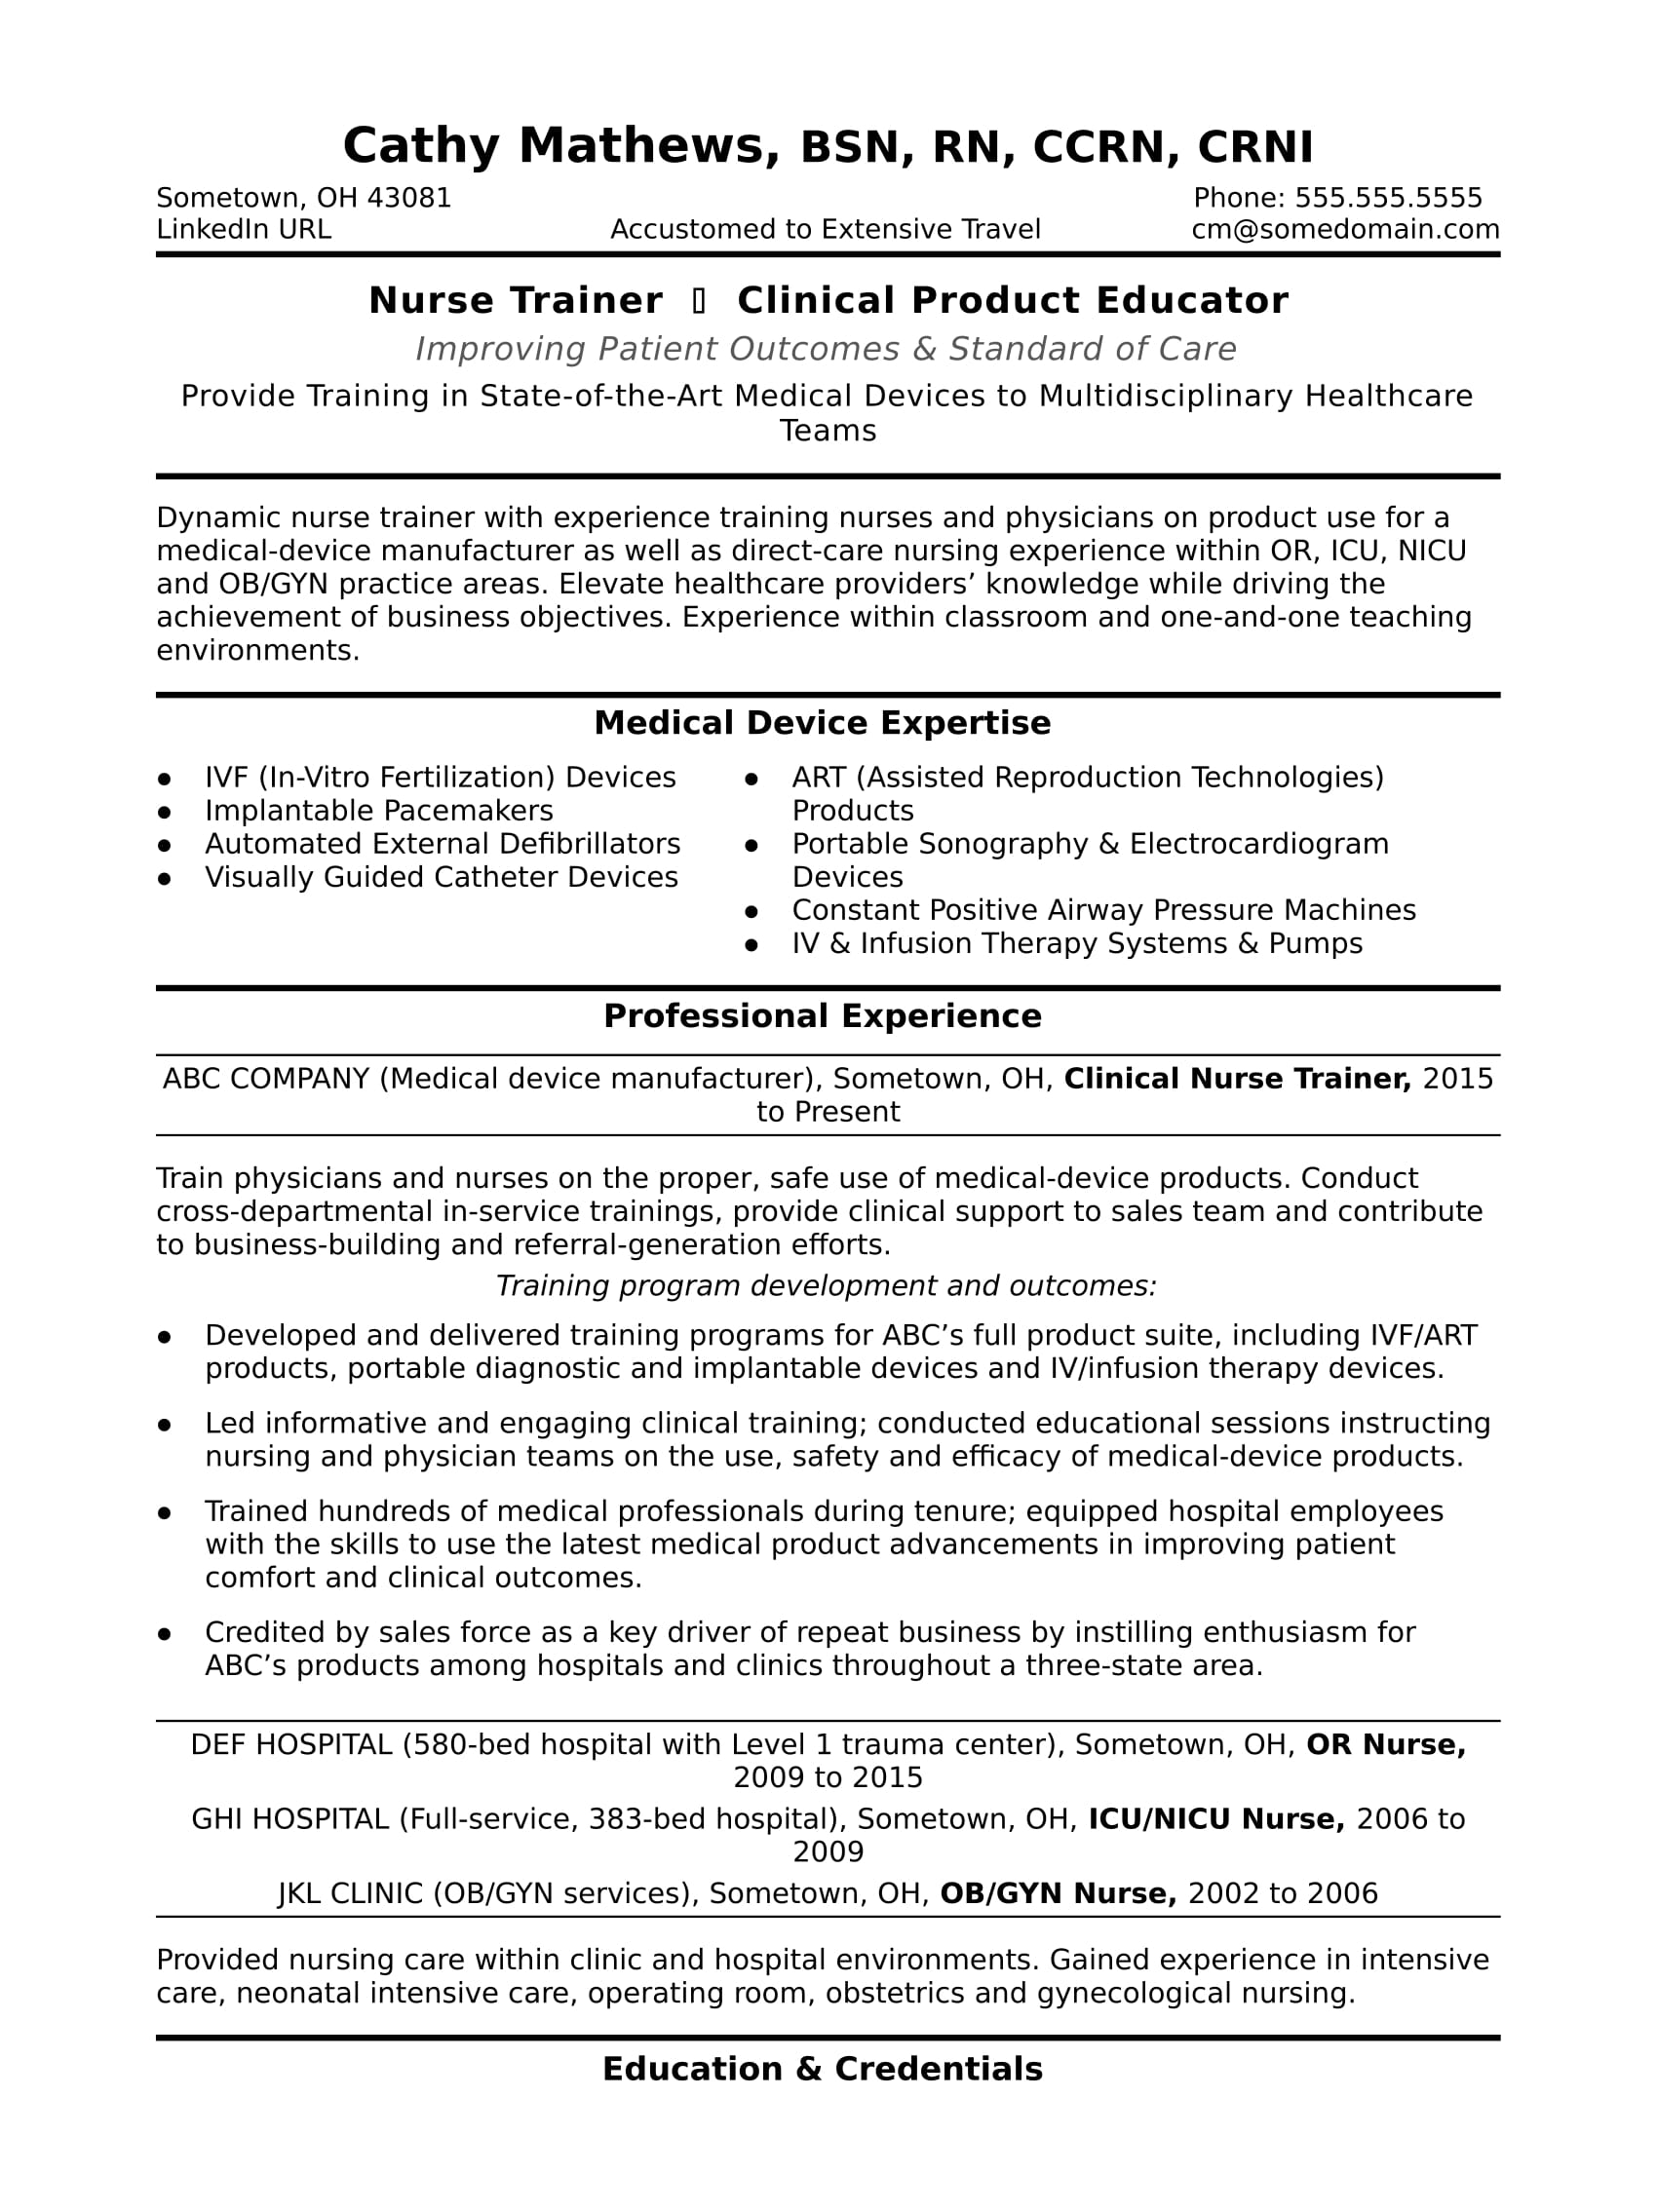 Physician Resumes Nurse Trainer Resume Sample Monster